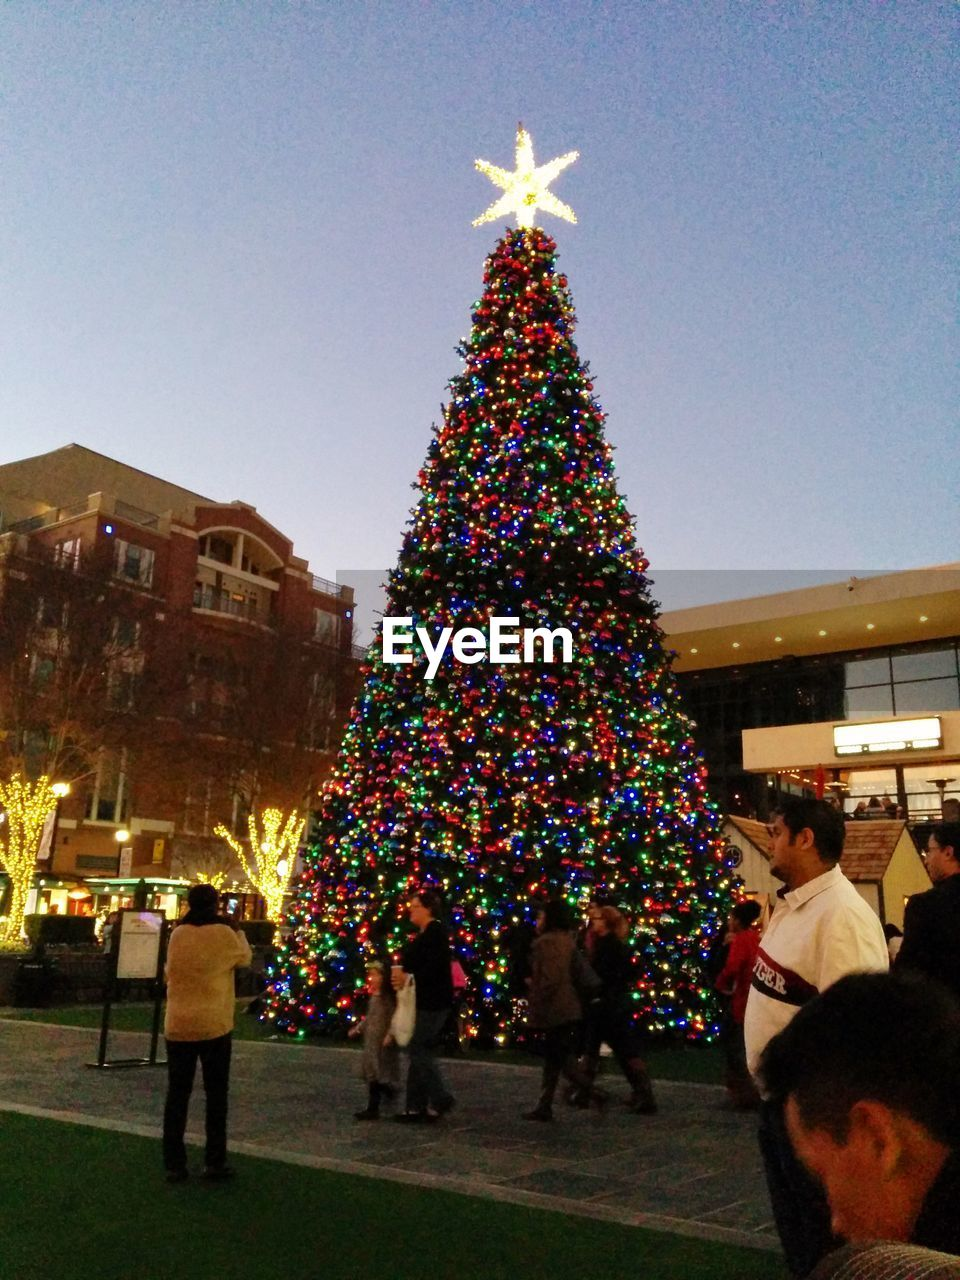 christmas tree, christmas, real people, celebration, large group of people, clear sky, christmas lights, tree topper, illuminated, christmas decoration, tree, men, outdoors, night, building exterior, women, sky, people